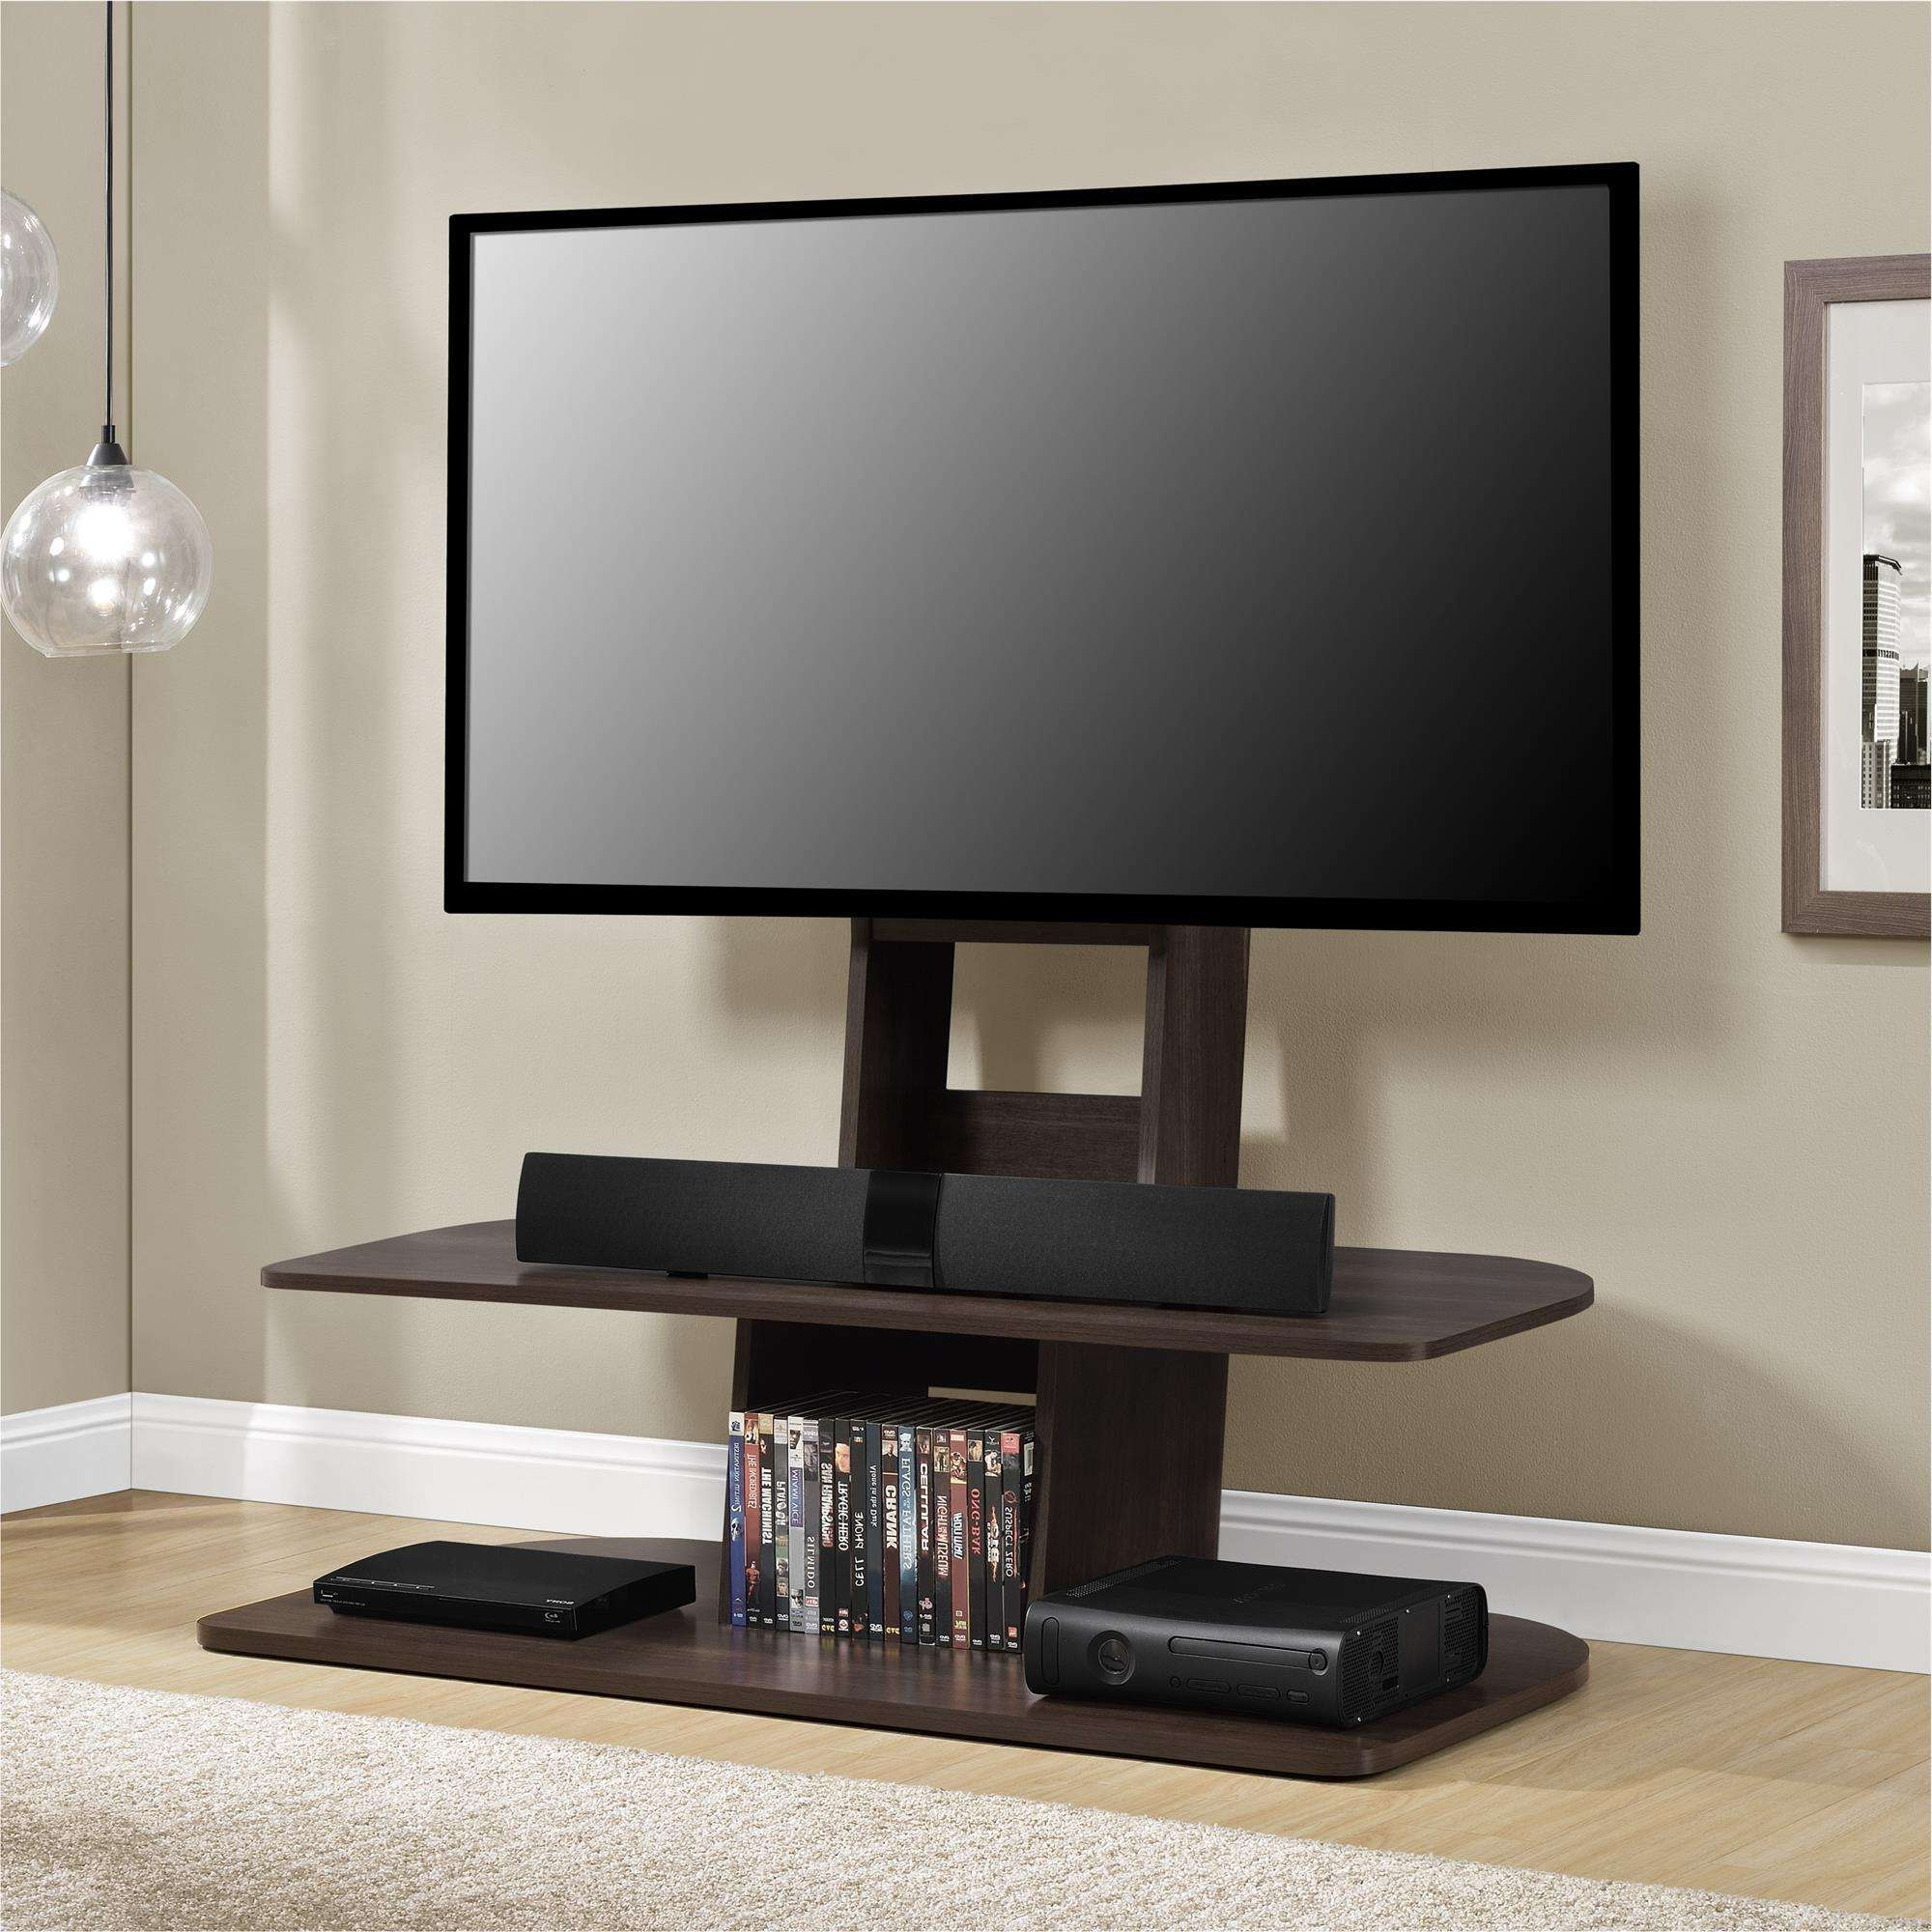 Tv : Exquisite 65 Inch Tv Stands With Integrated Mount Interesting With 65 Inch Tv Stands With Integrated Mount (View 3 of 15)